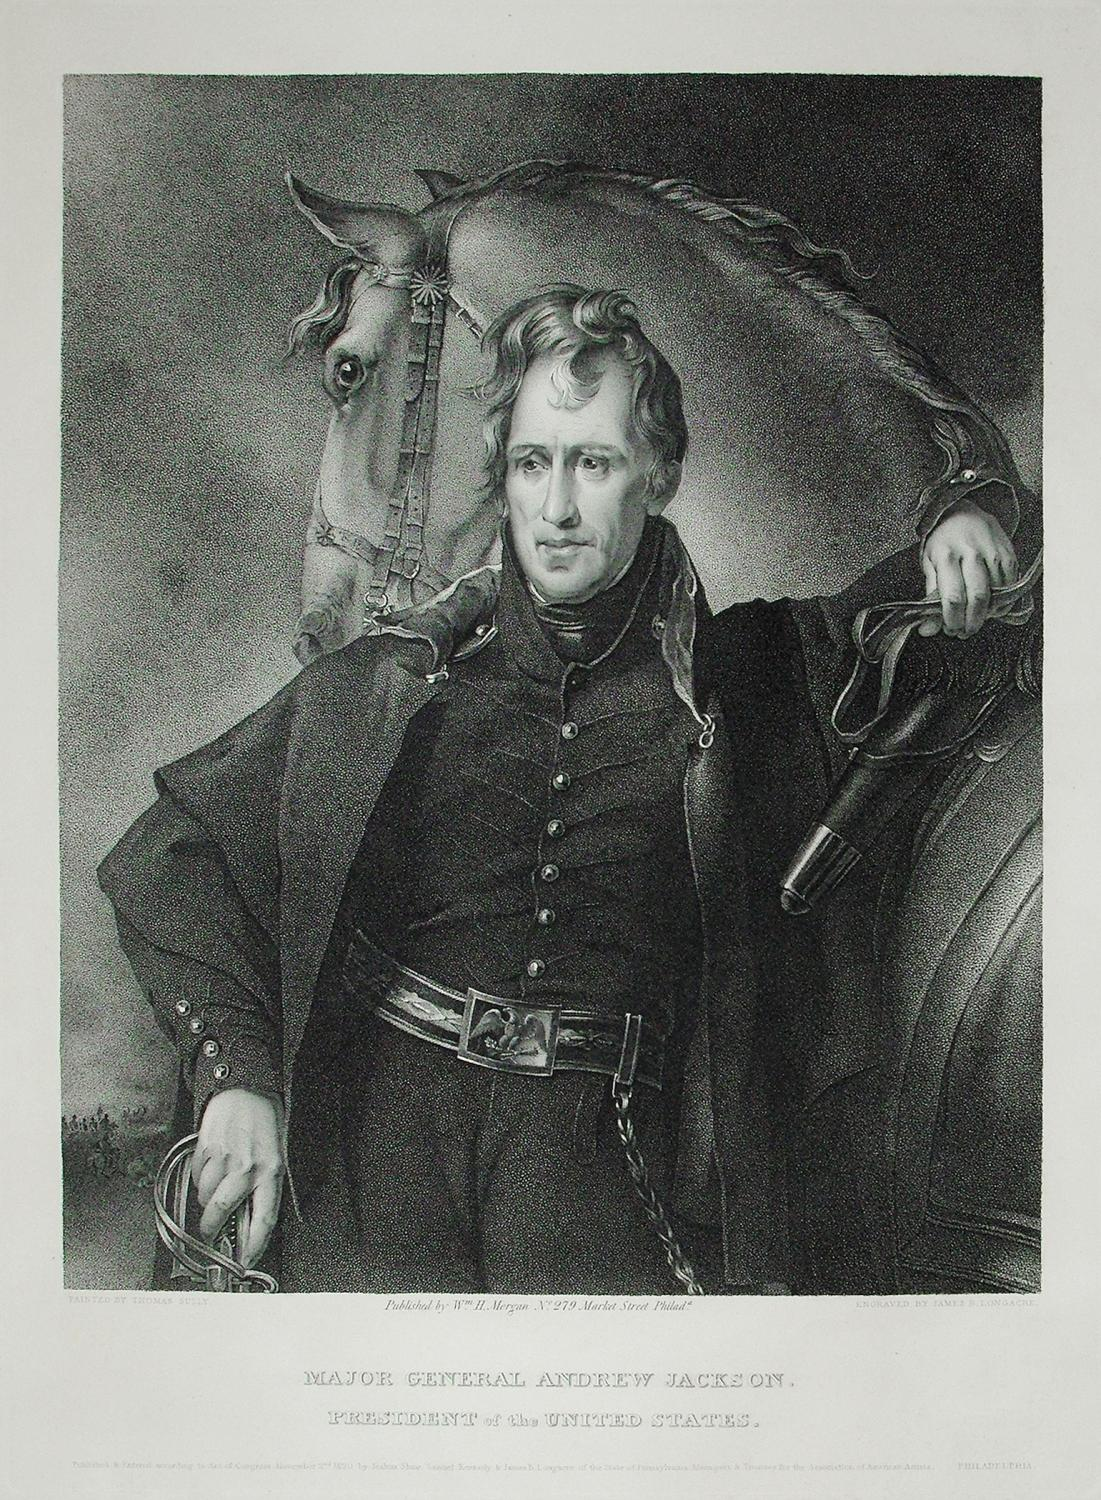 Major General Andrew Jackson. President of the United States.: James Barton Longacre (1794-1869)